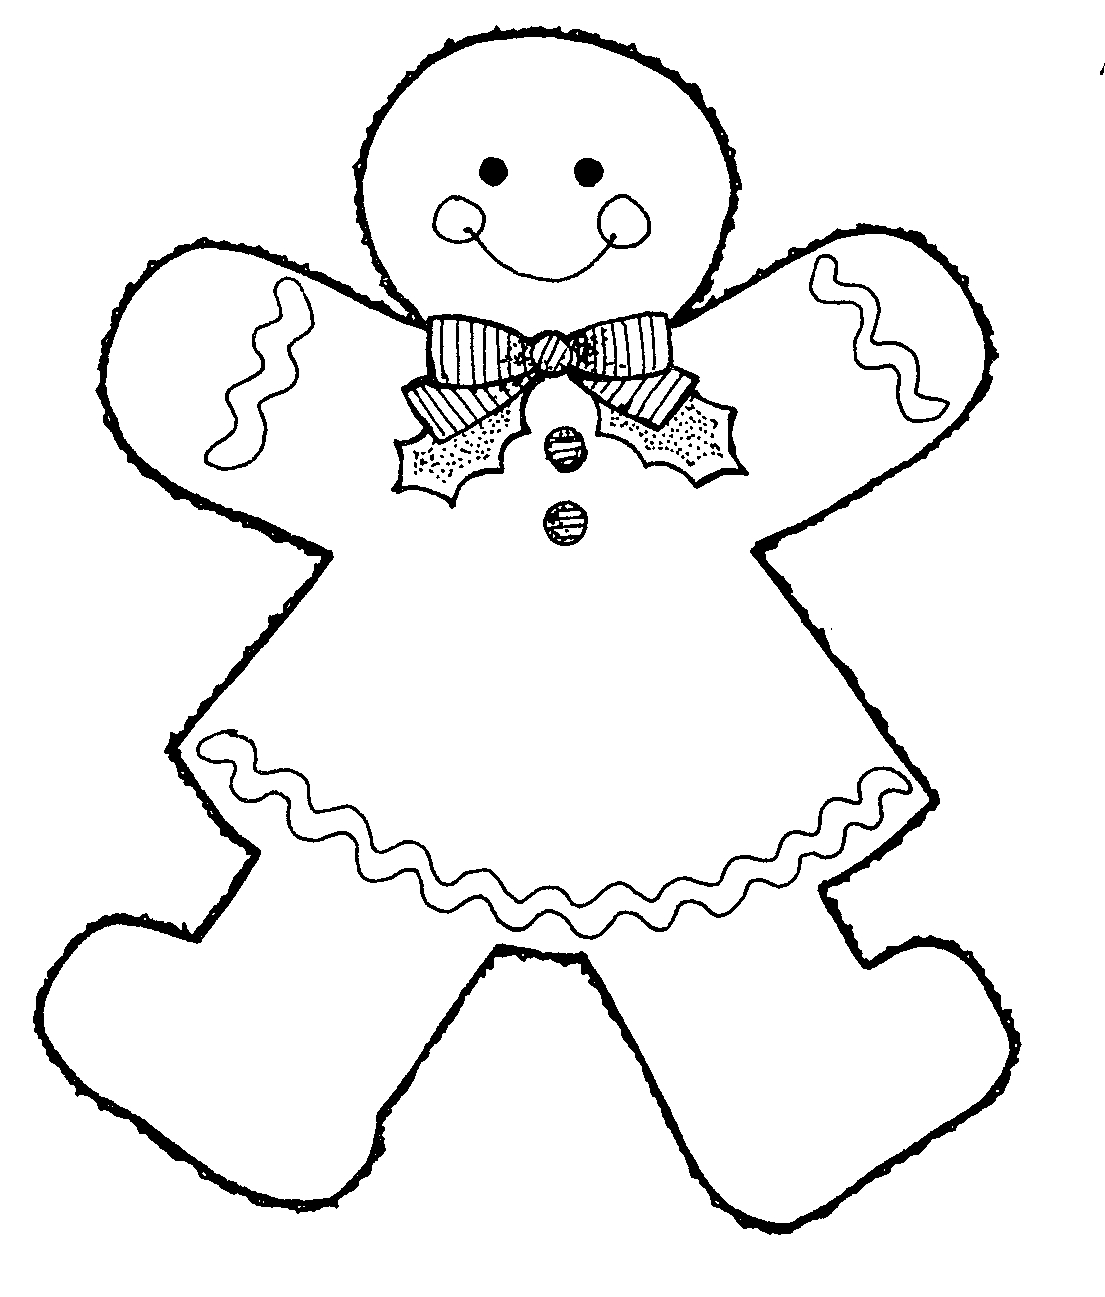 Images For Gingerbread Man Clip Art